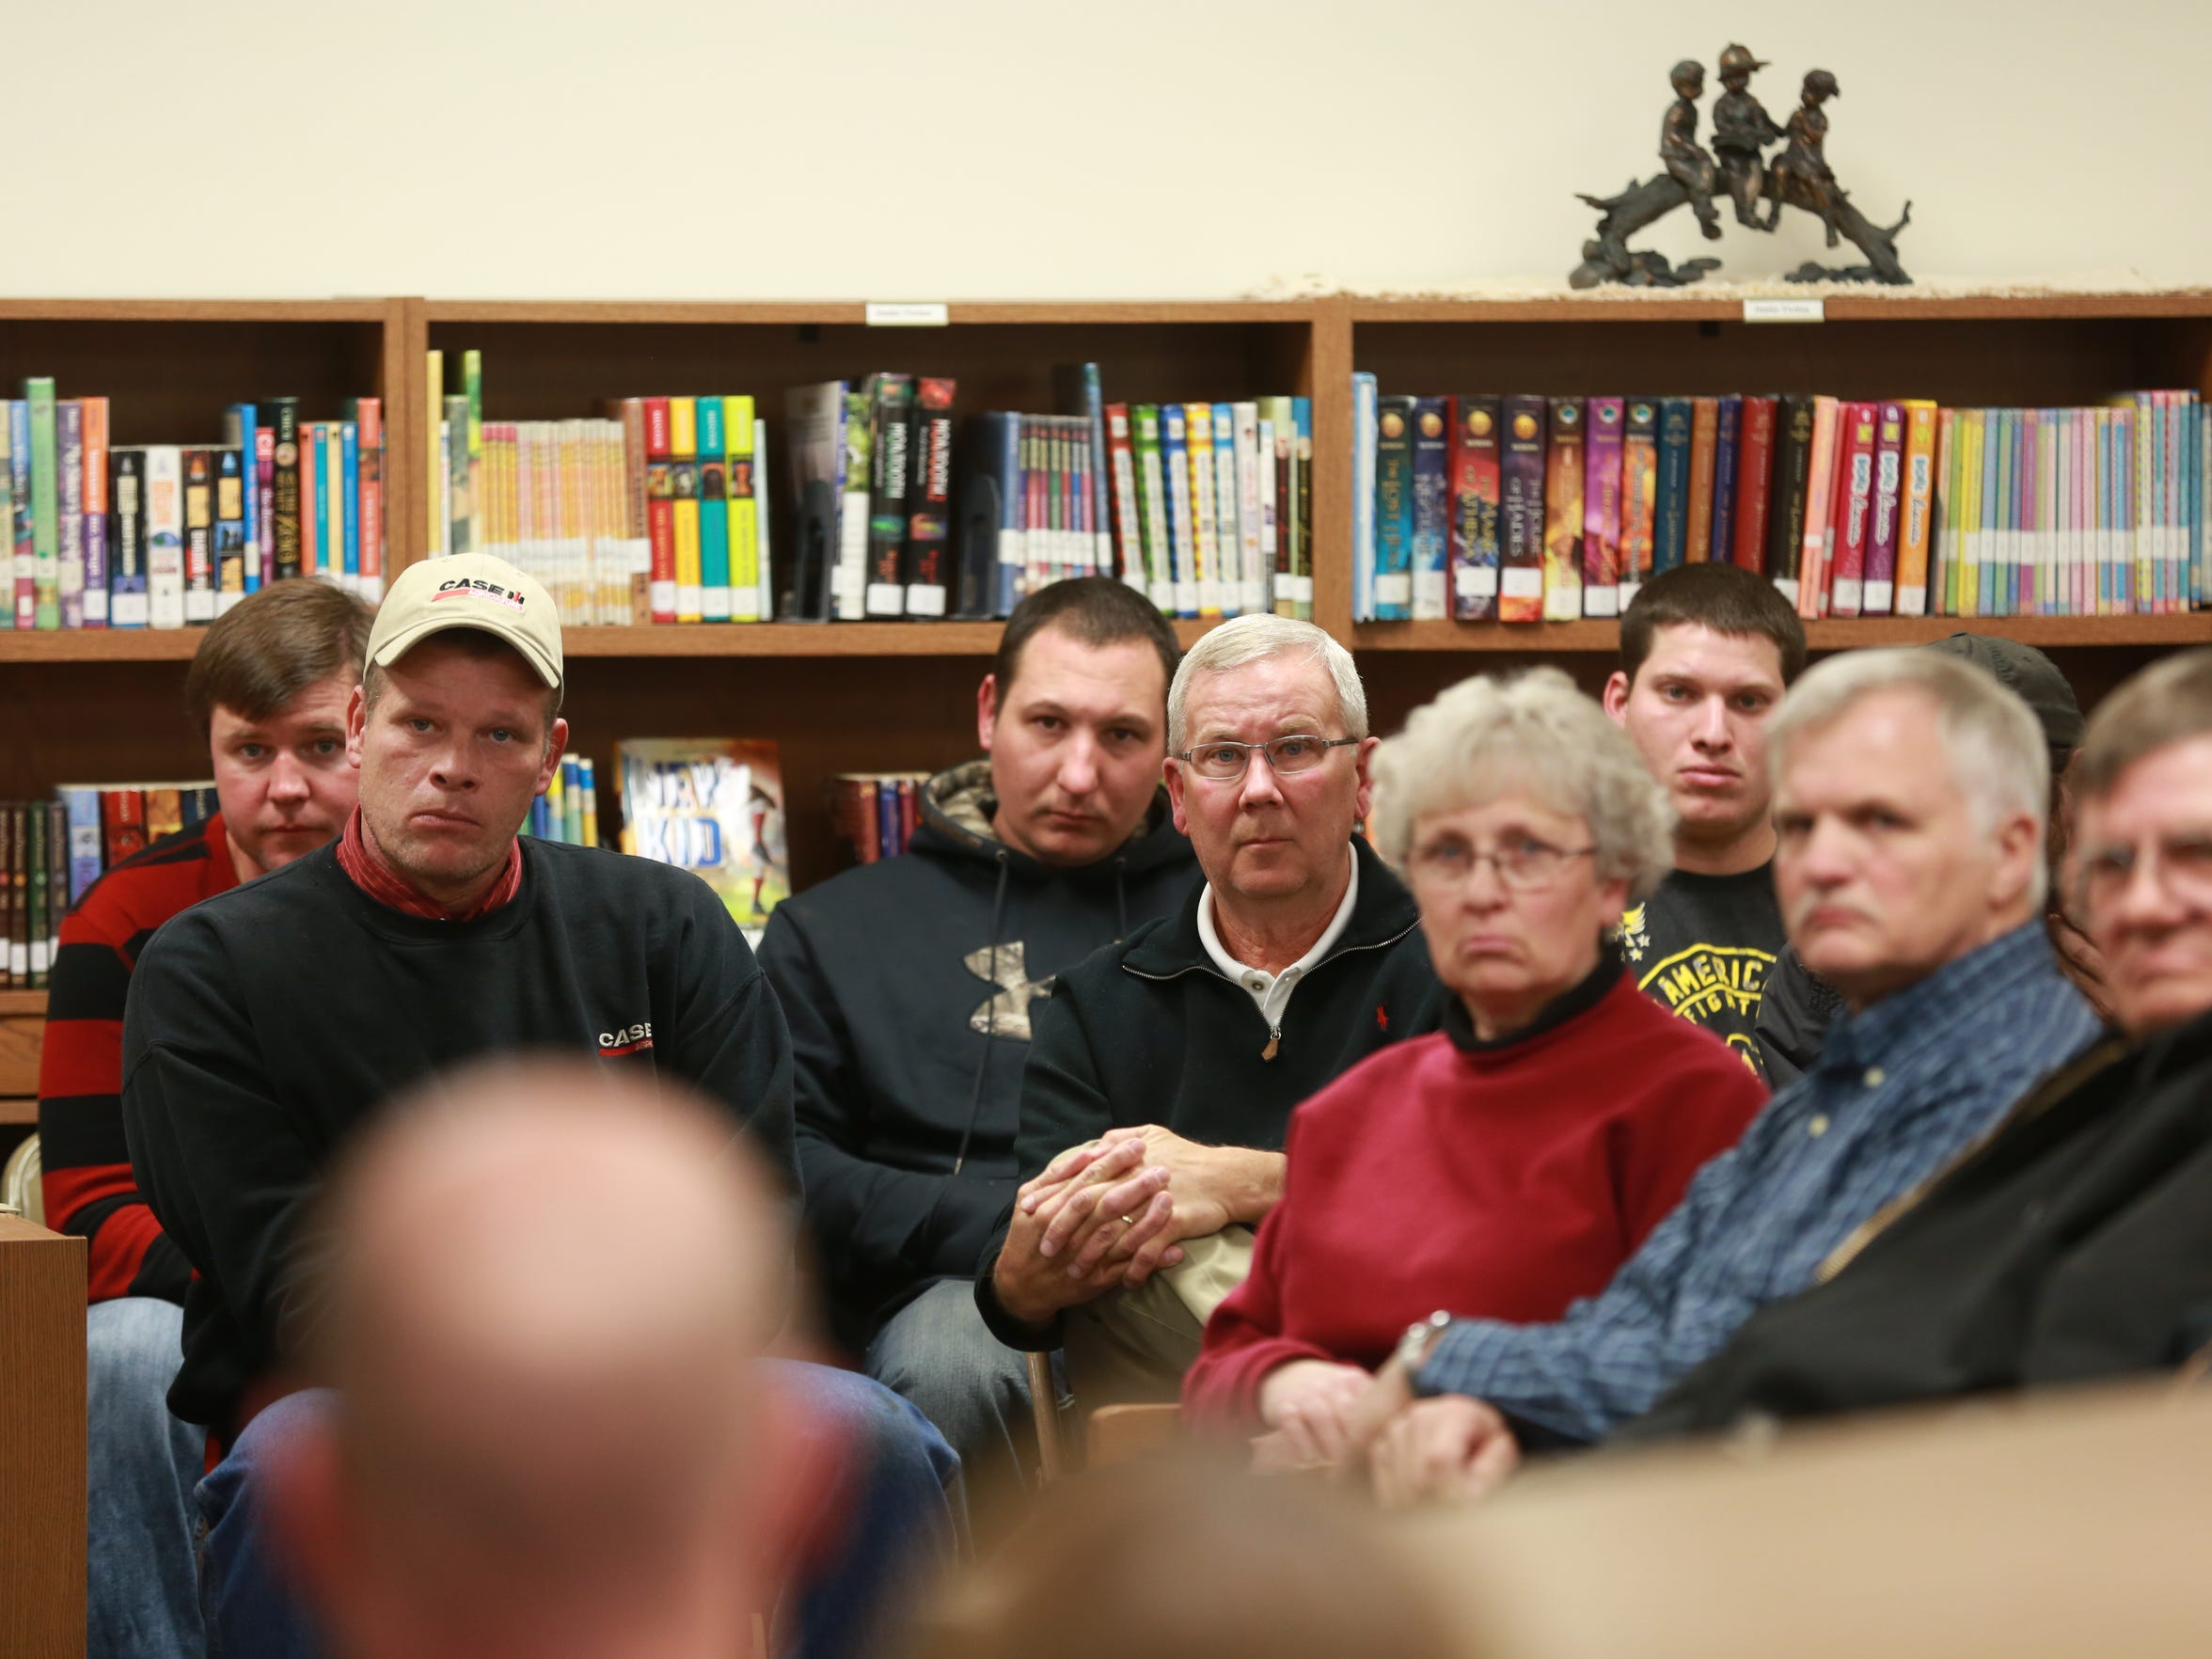 School board members and civic leaders gather to discuss the future of the Corwith-Wesley-Lu Verne high school building at a special meeting Tuesday of the Corwith City Council following the dissolution of the district at the conclusion of the 2014-2015 school year.